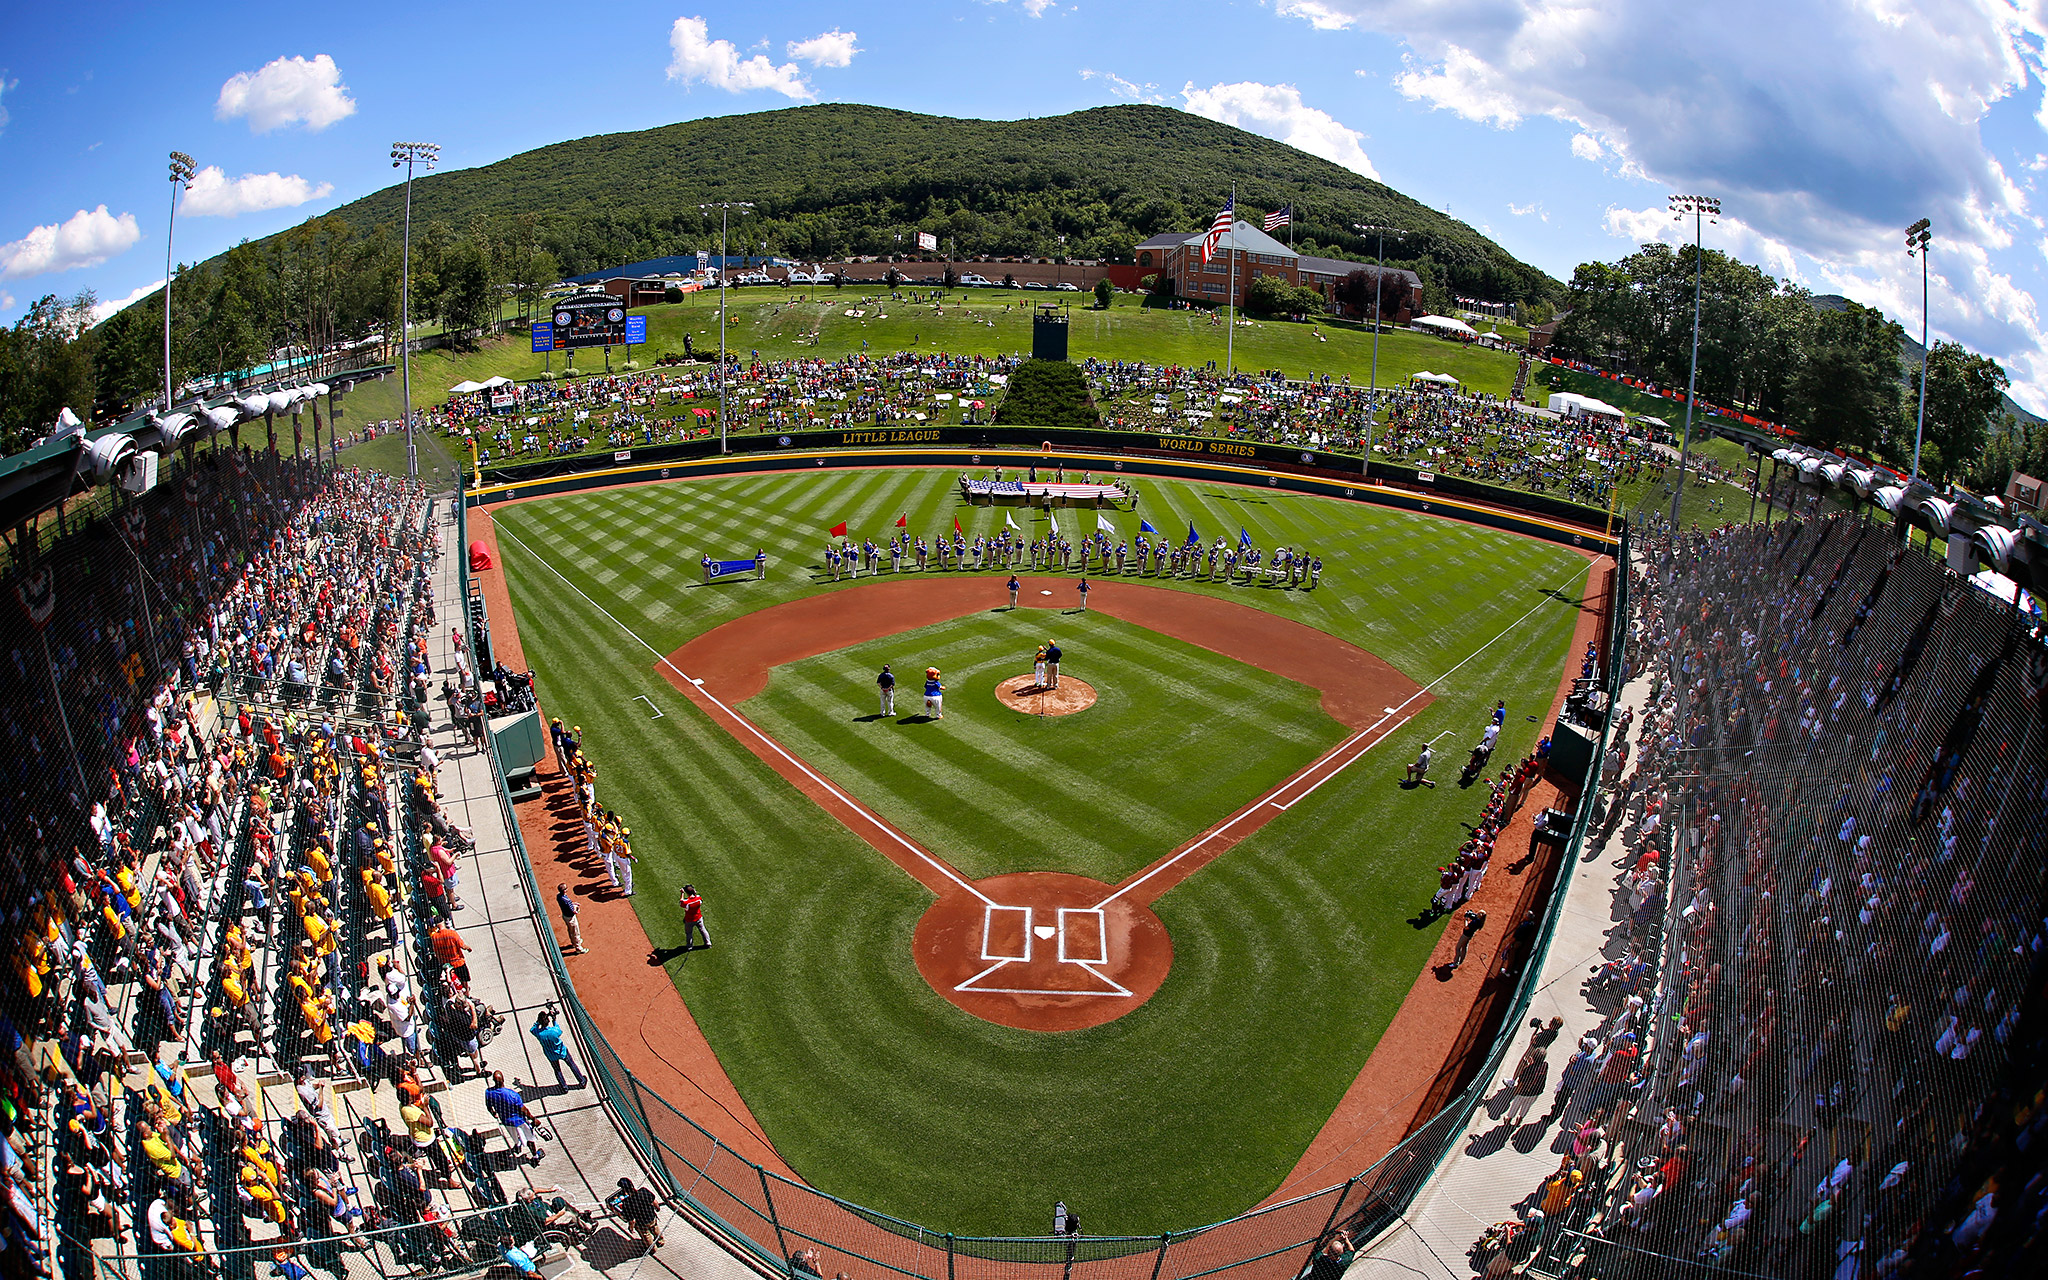 Thousands of family members, volunteers and fans converged on South Williamsport, Pennsylvania, for the 75th annual Little League World Series.